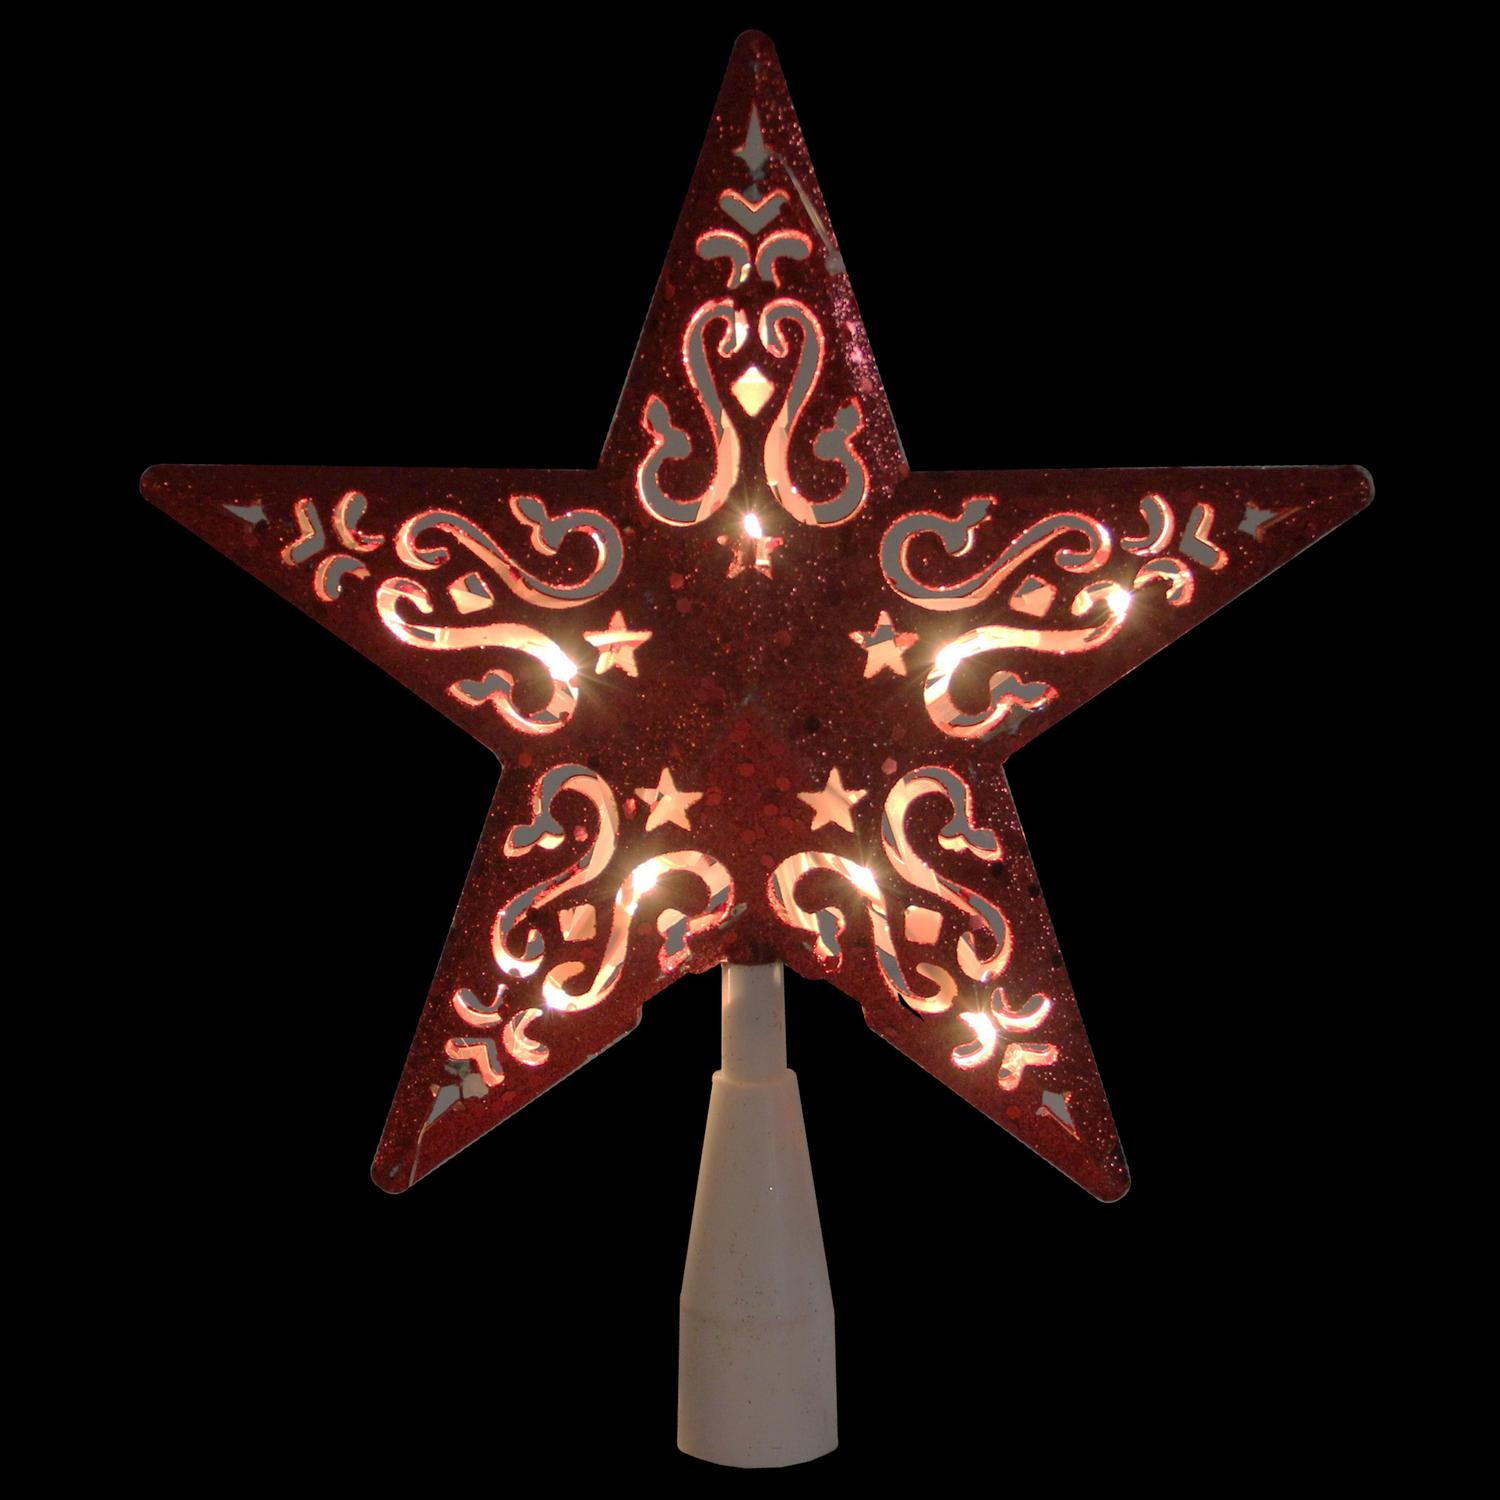 """8.5"""" Red Glitter Star Cut-Out Design Christmas Tree Topper - Clear Lights - image 1 de 2"""